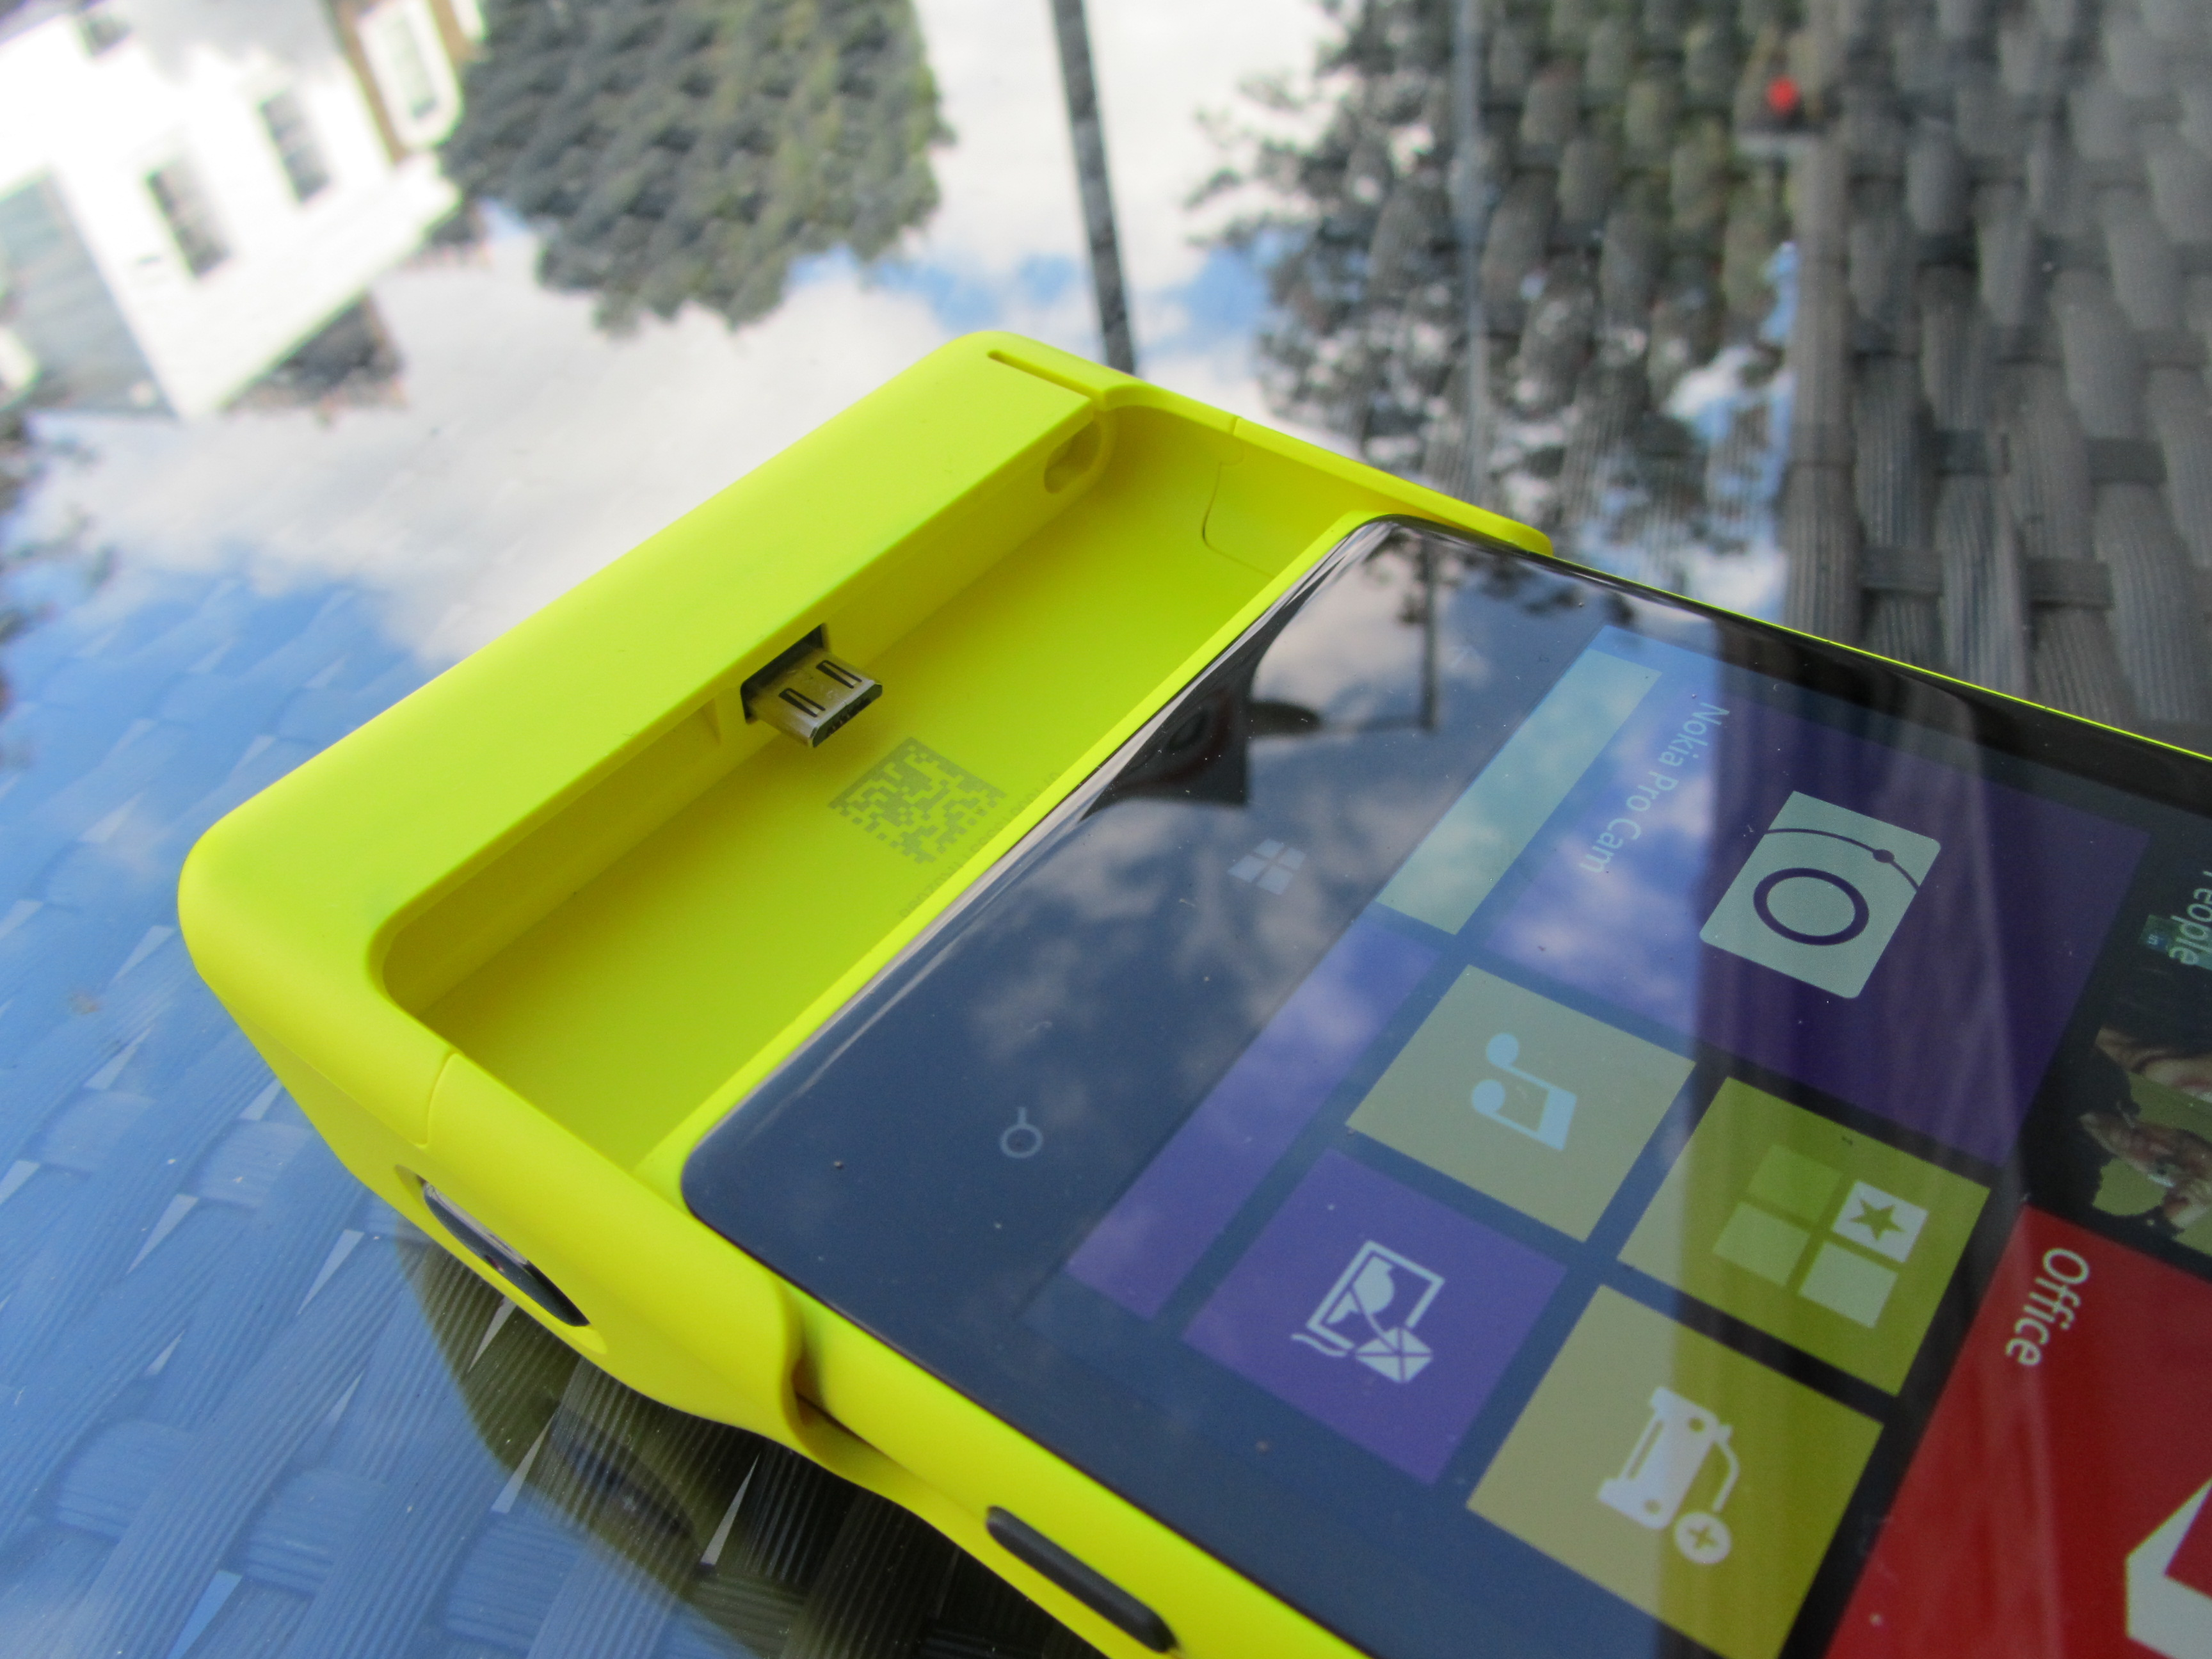 IMG 2021 Nokia Lumia 1020 review: The best camera phone, but not the best smartphone